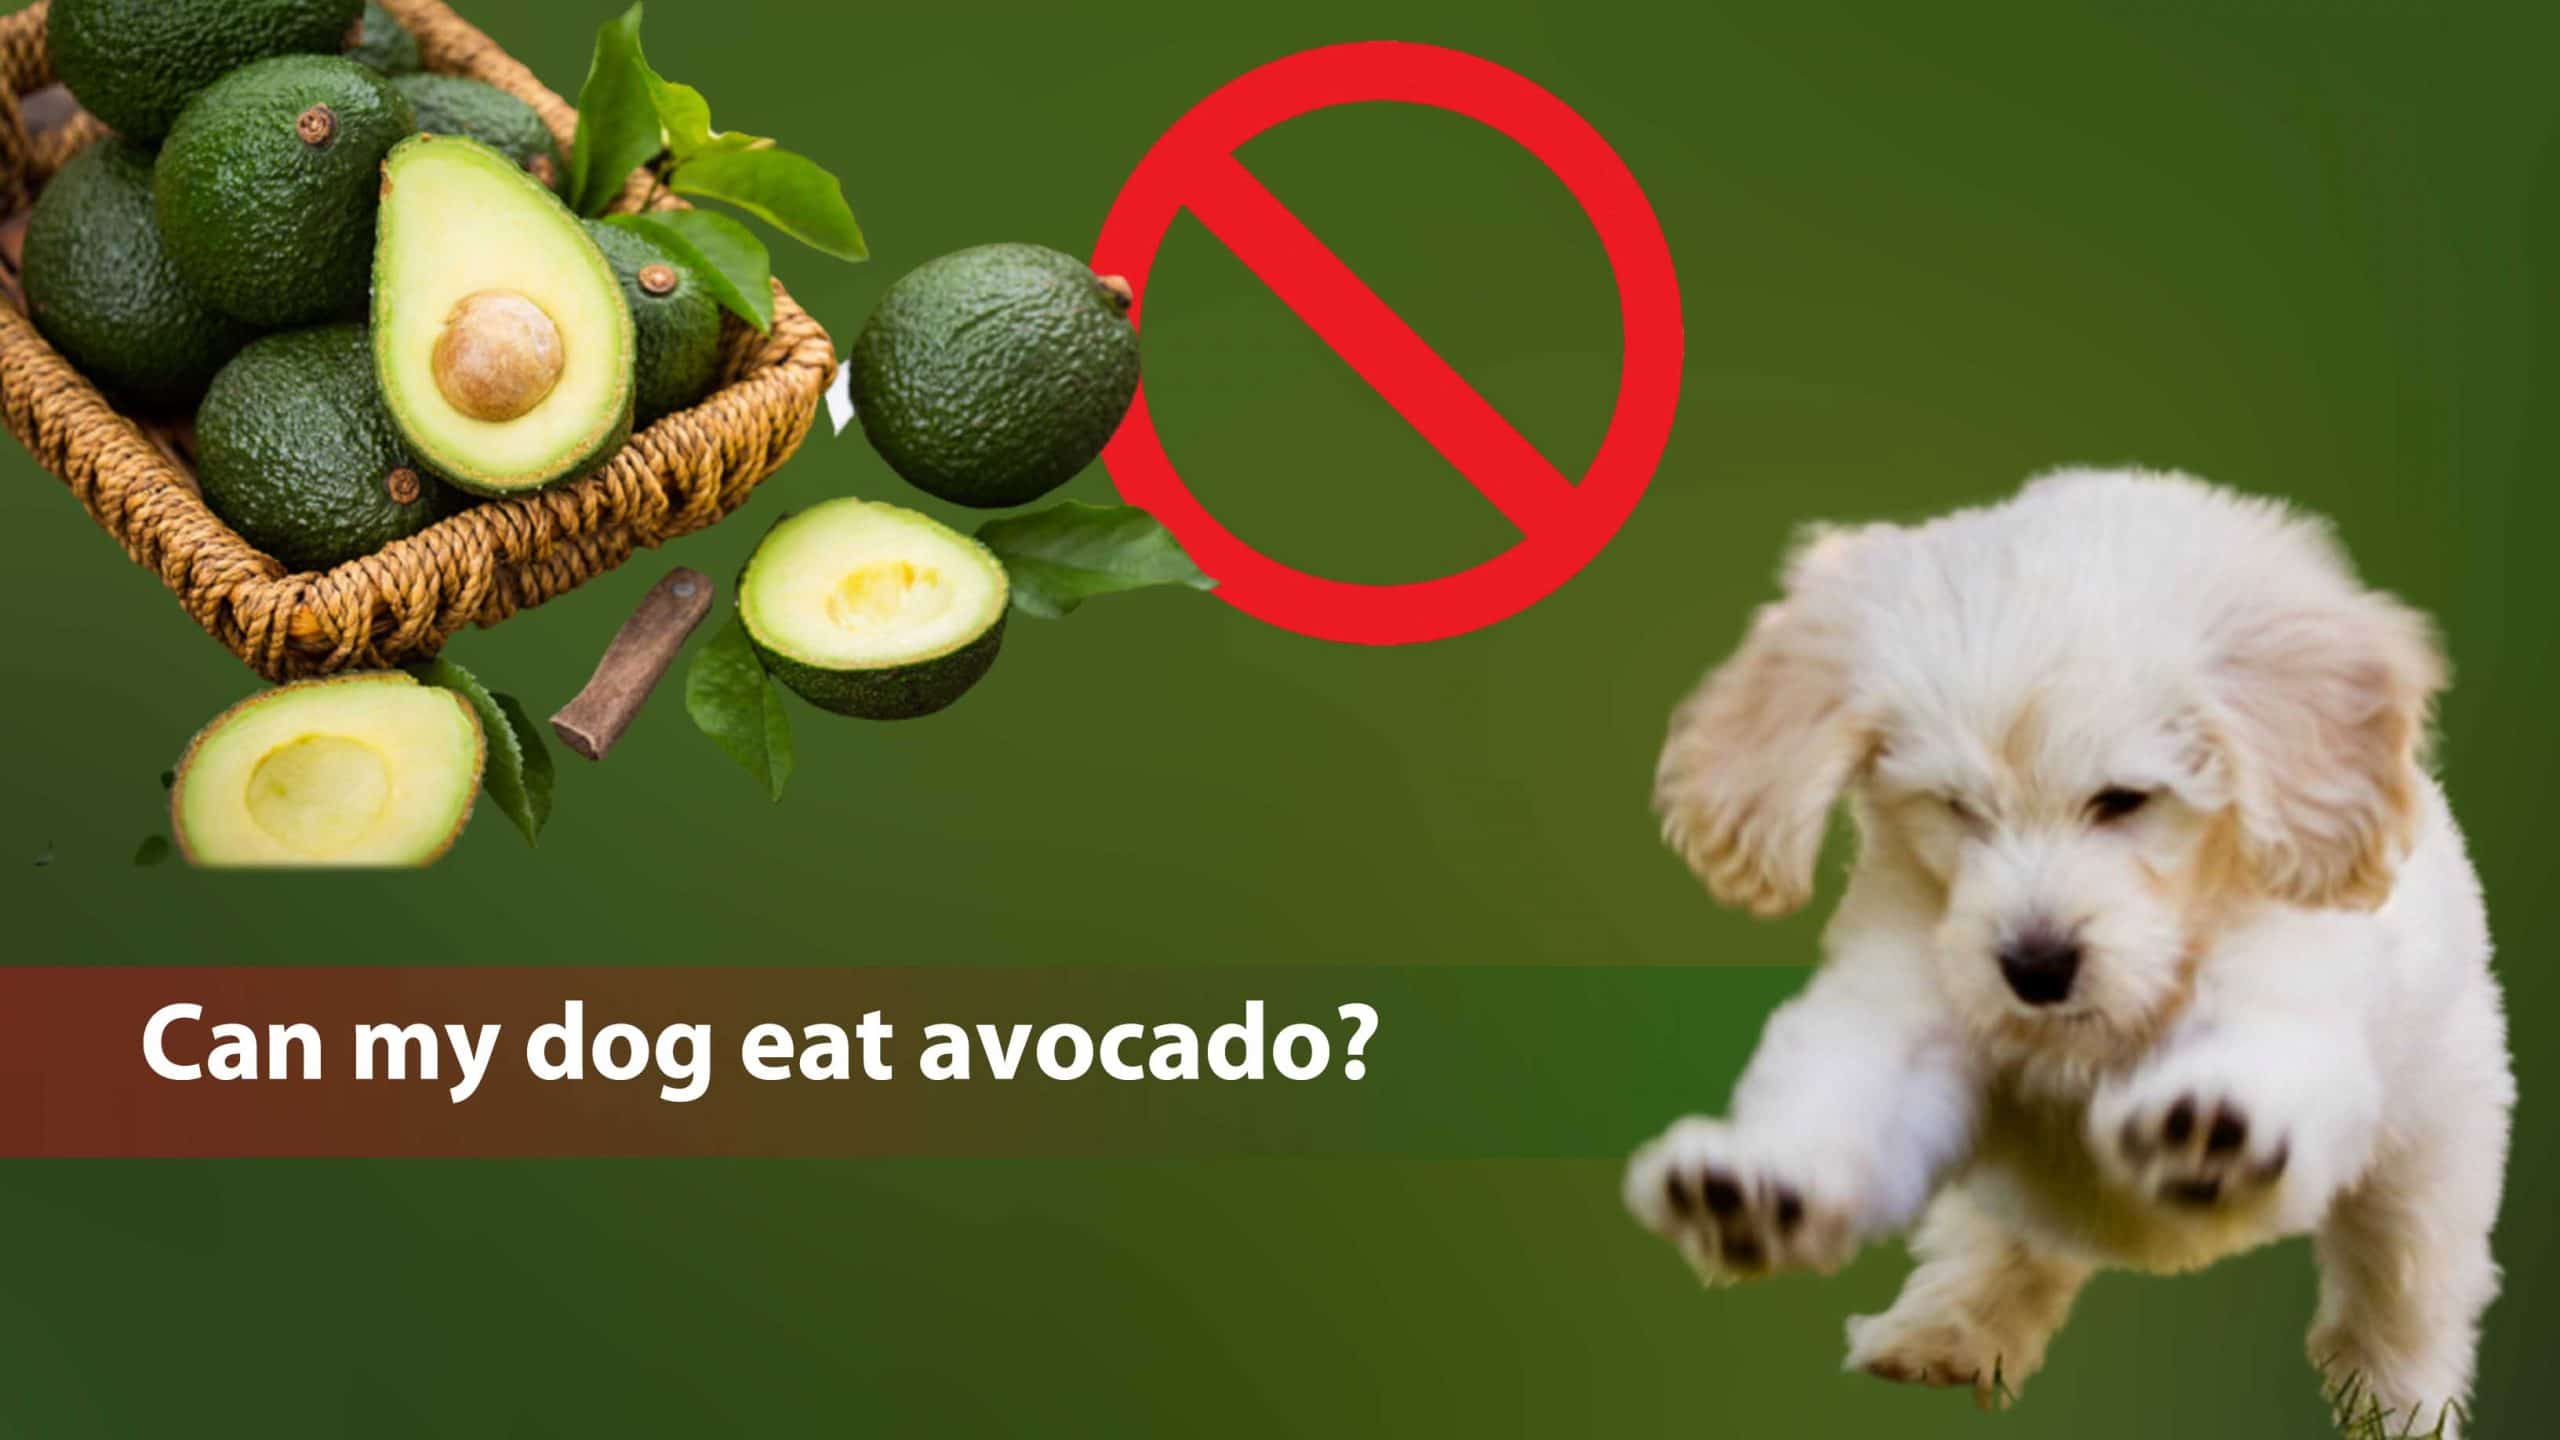 Can my dog eat avocado? Is it safe?